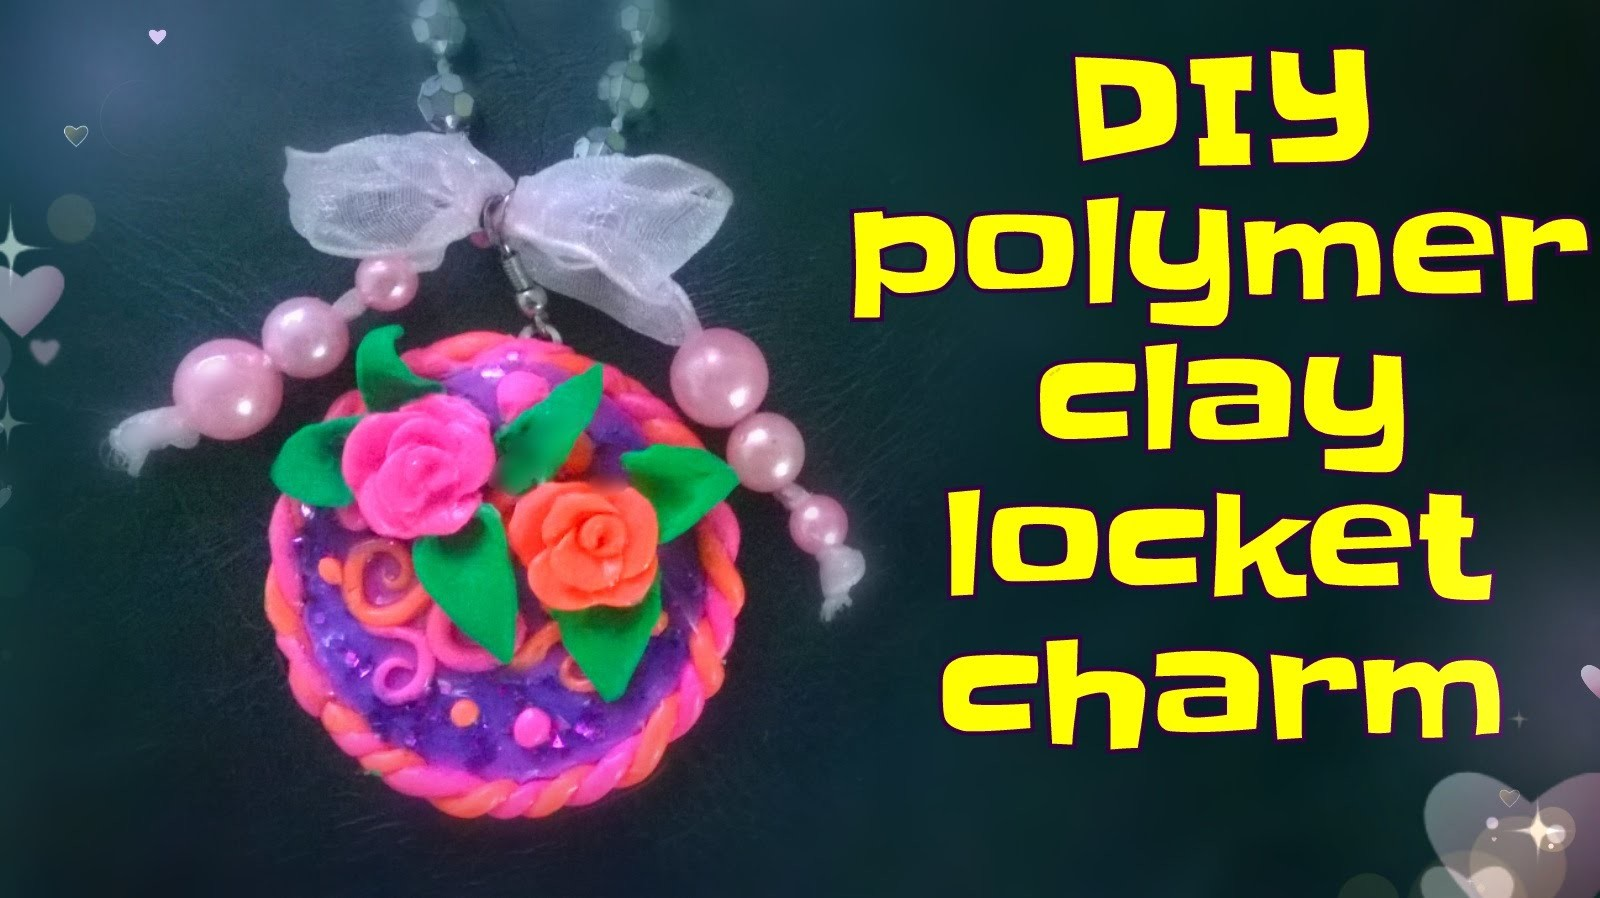 DIY Polymer clay locket charm tutorial